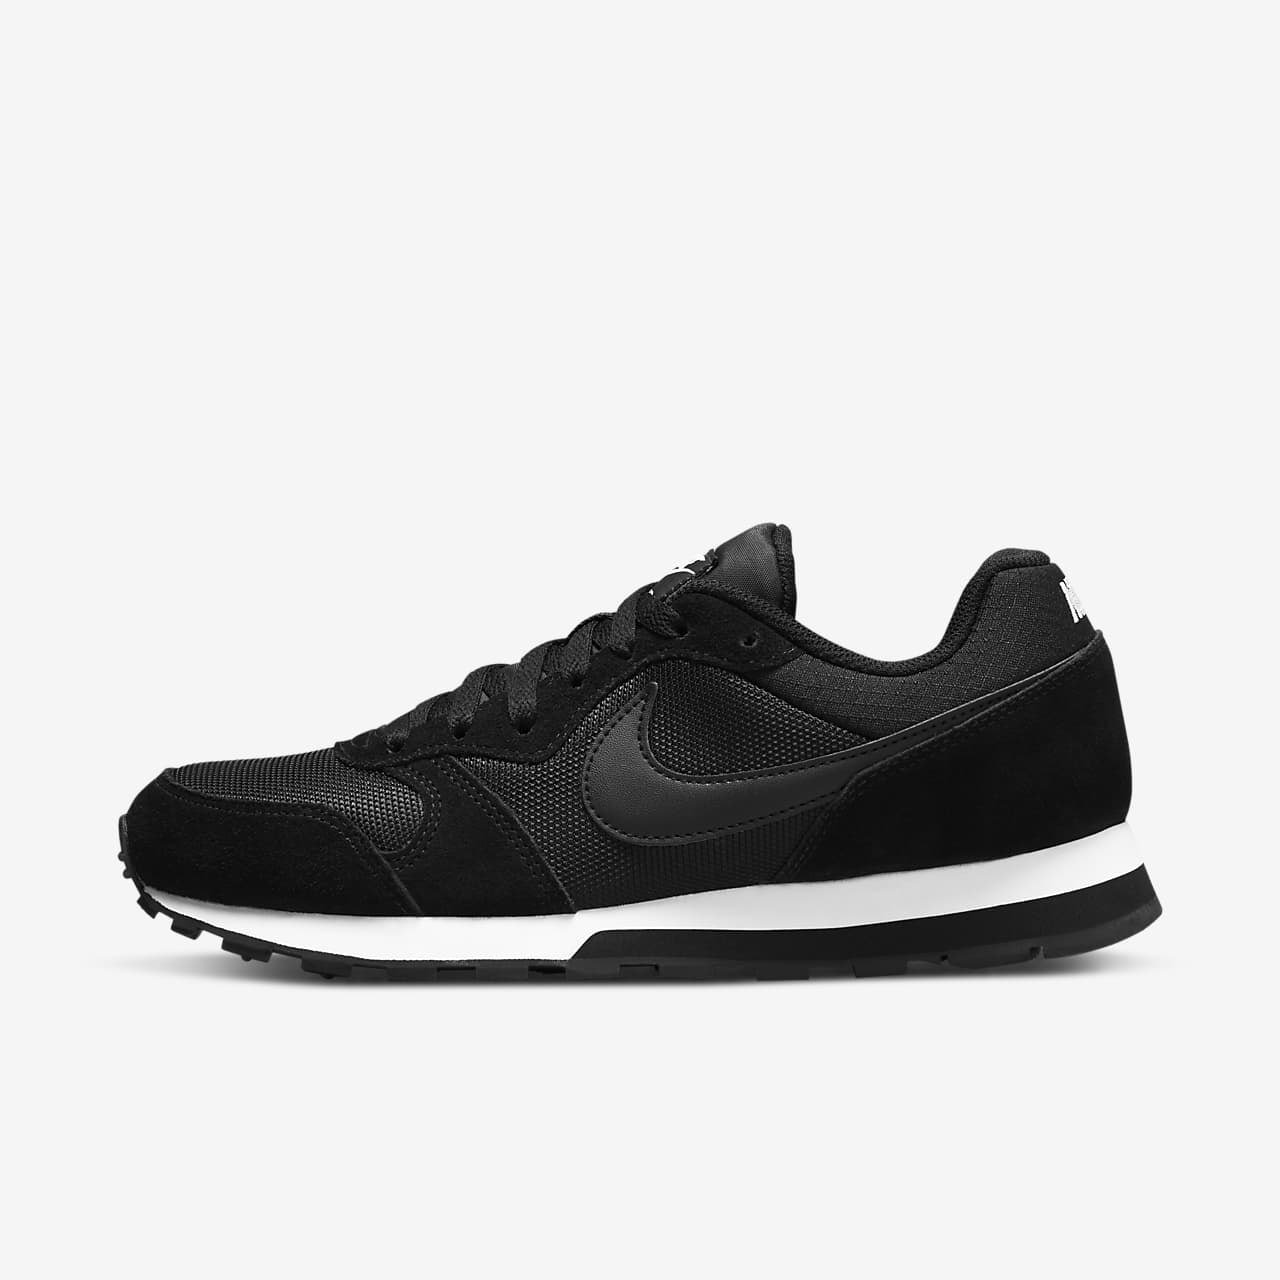 new styles 246c1 ddc10 Nike MD Runner 2